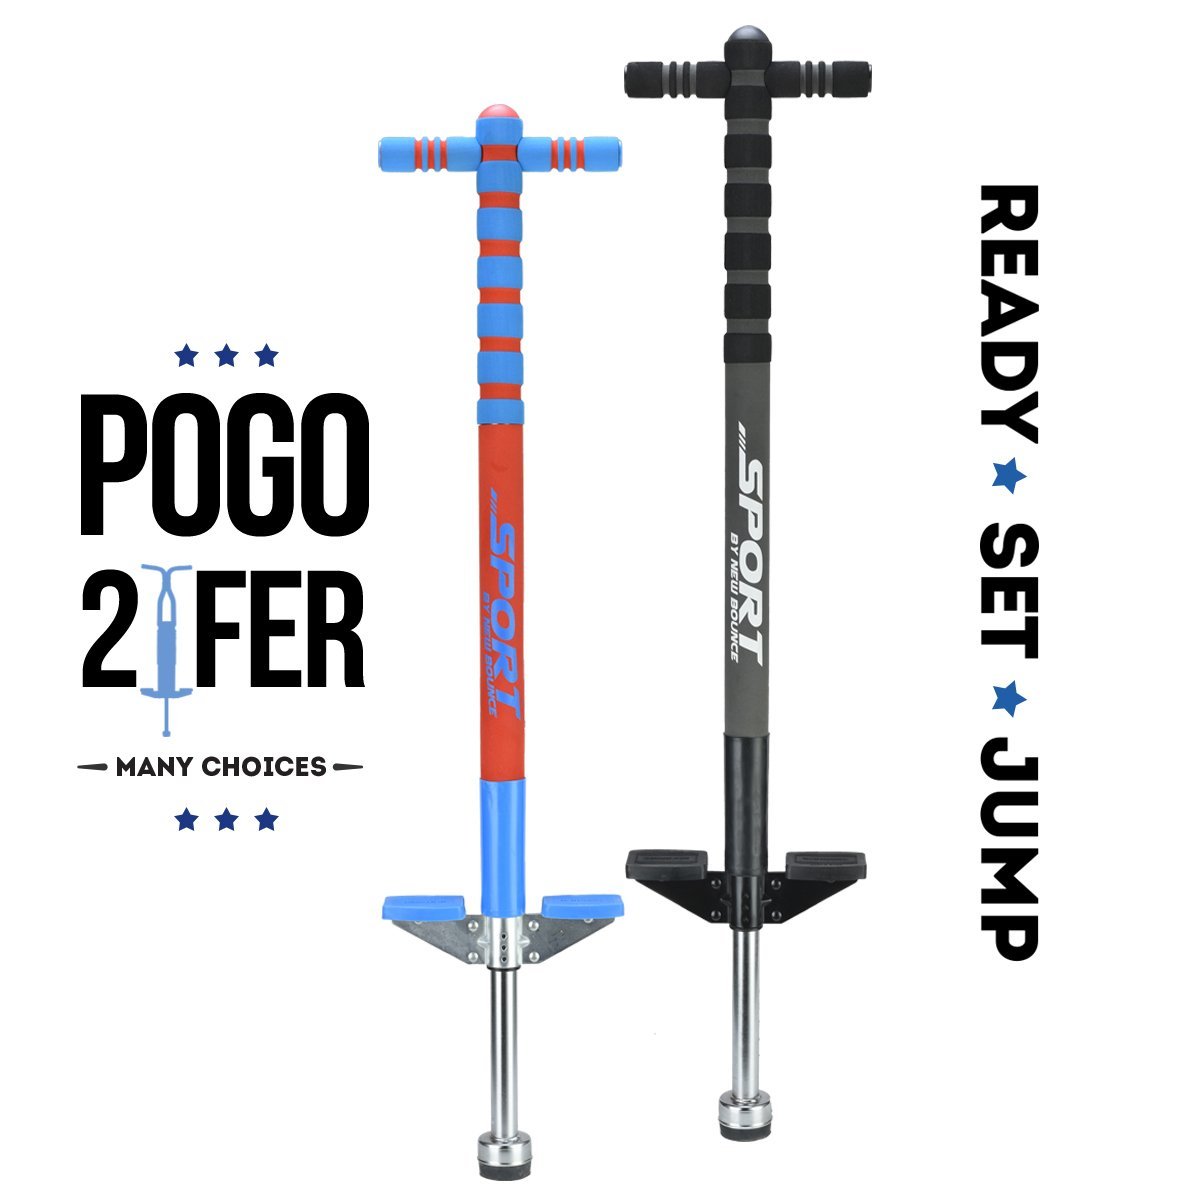 New Bounce Soft, Easy Grip Sport Pogo Stick- 2 Pack Combo Set